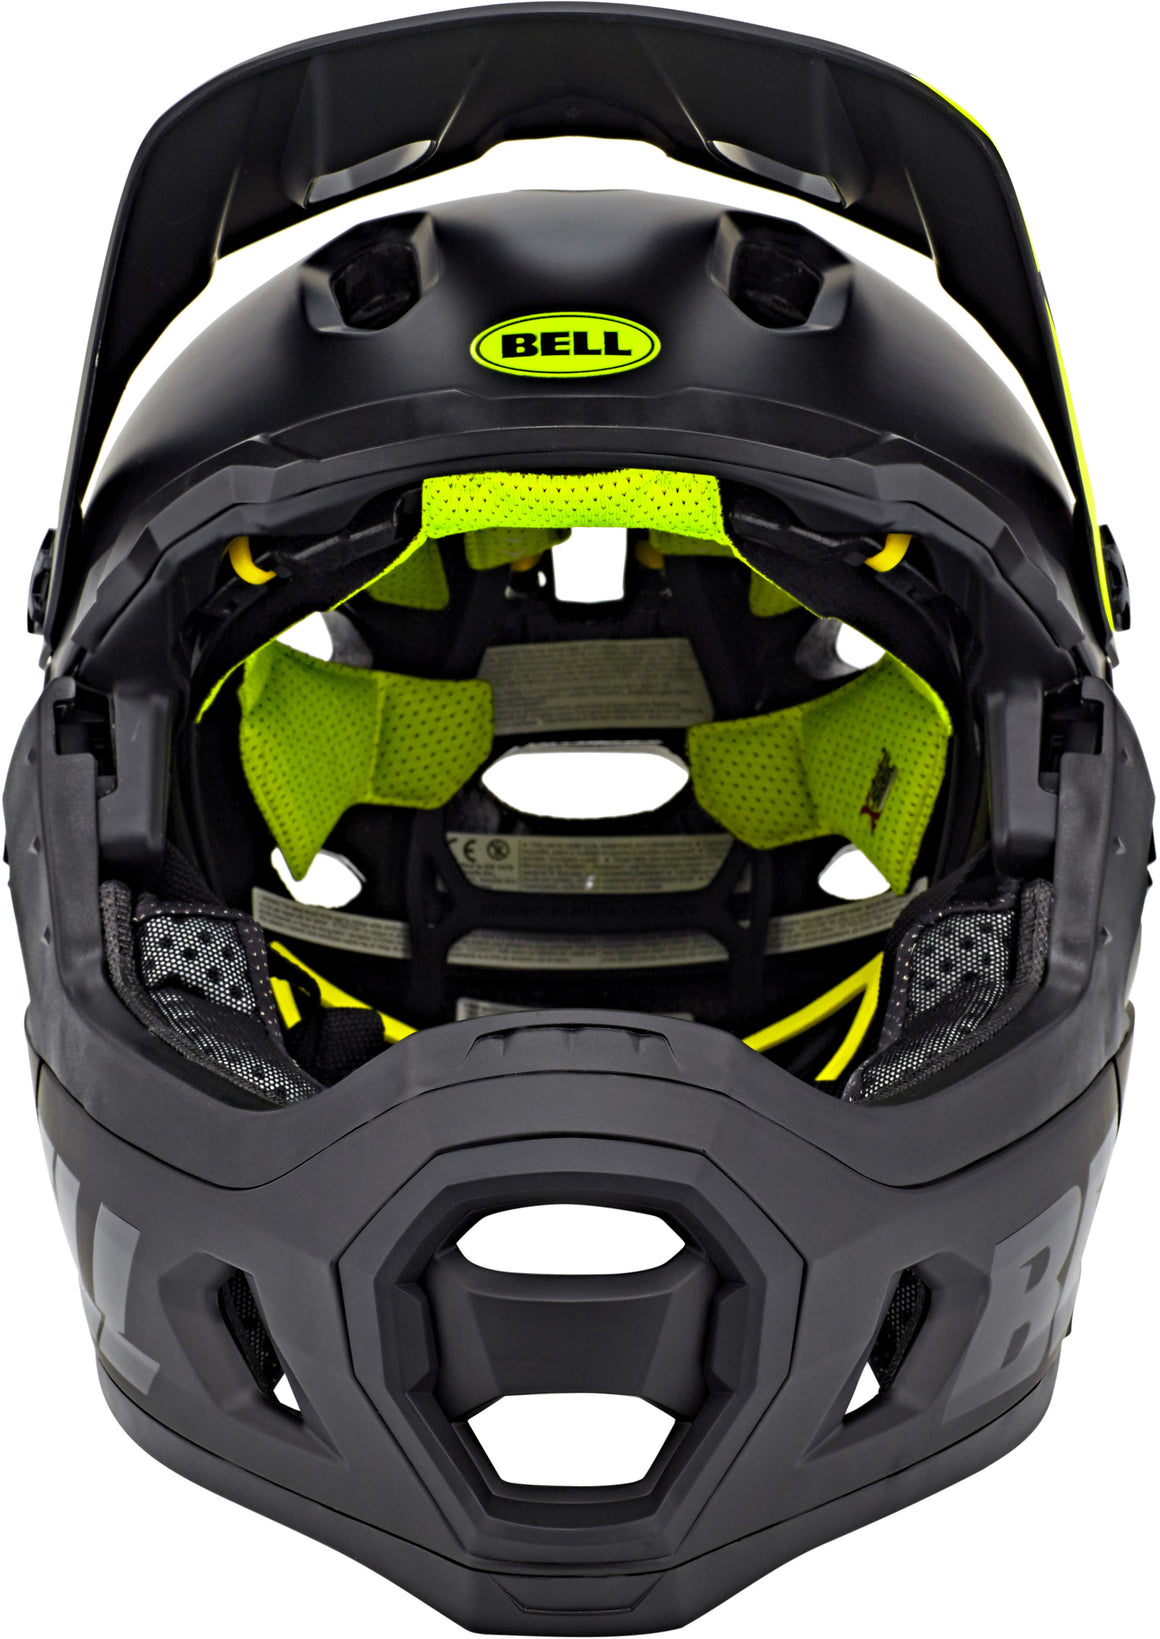 Bell Super DH MIPS 2020 Black (with detachable chin bar)